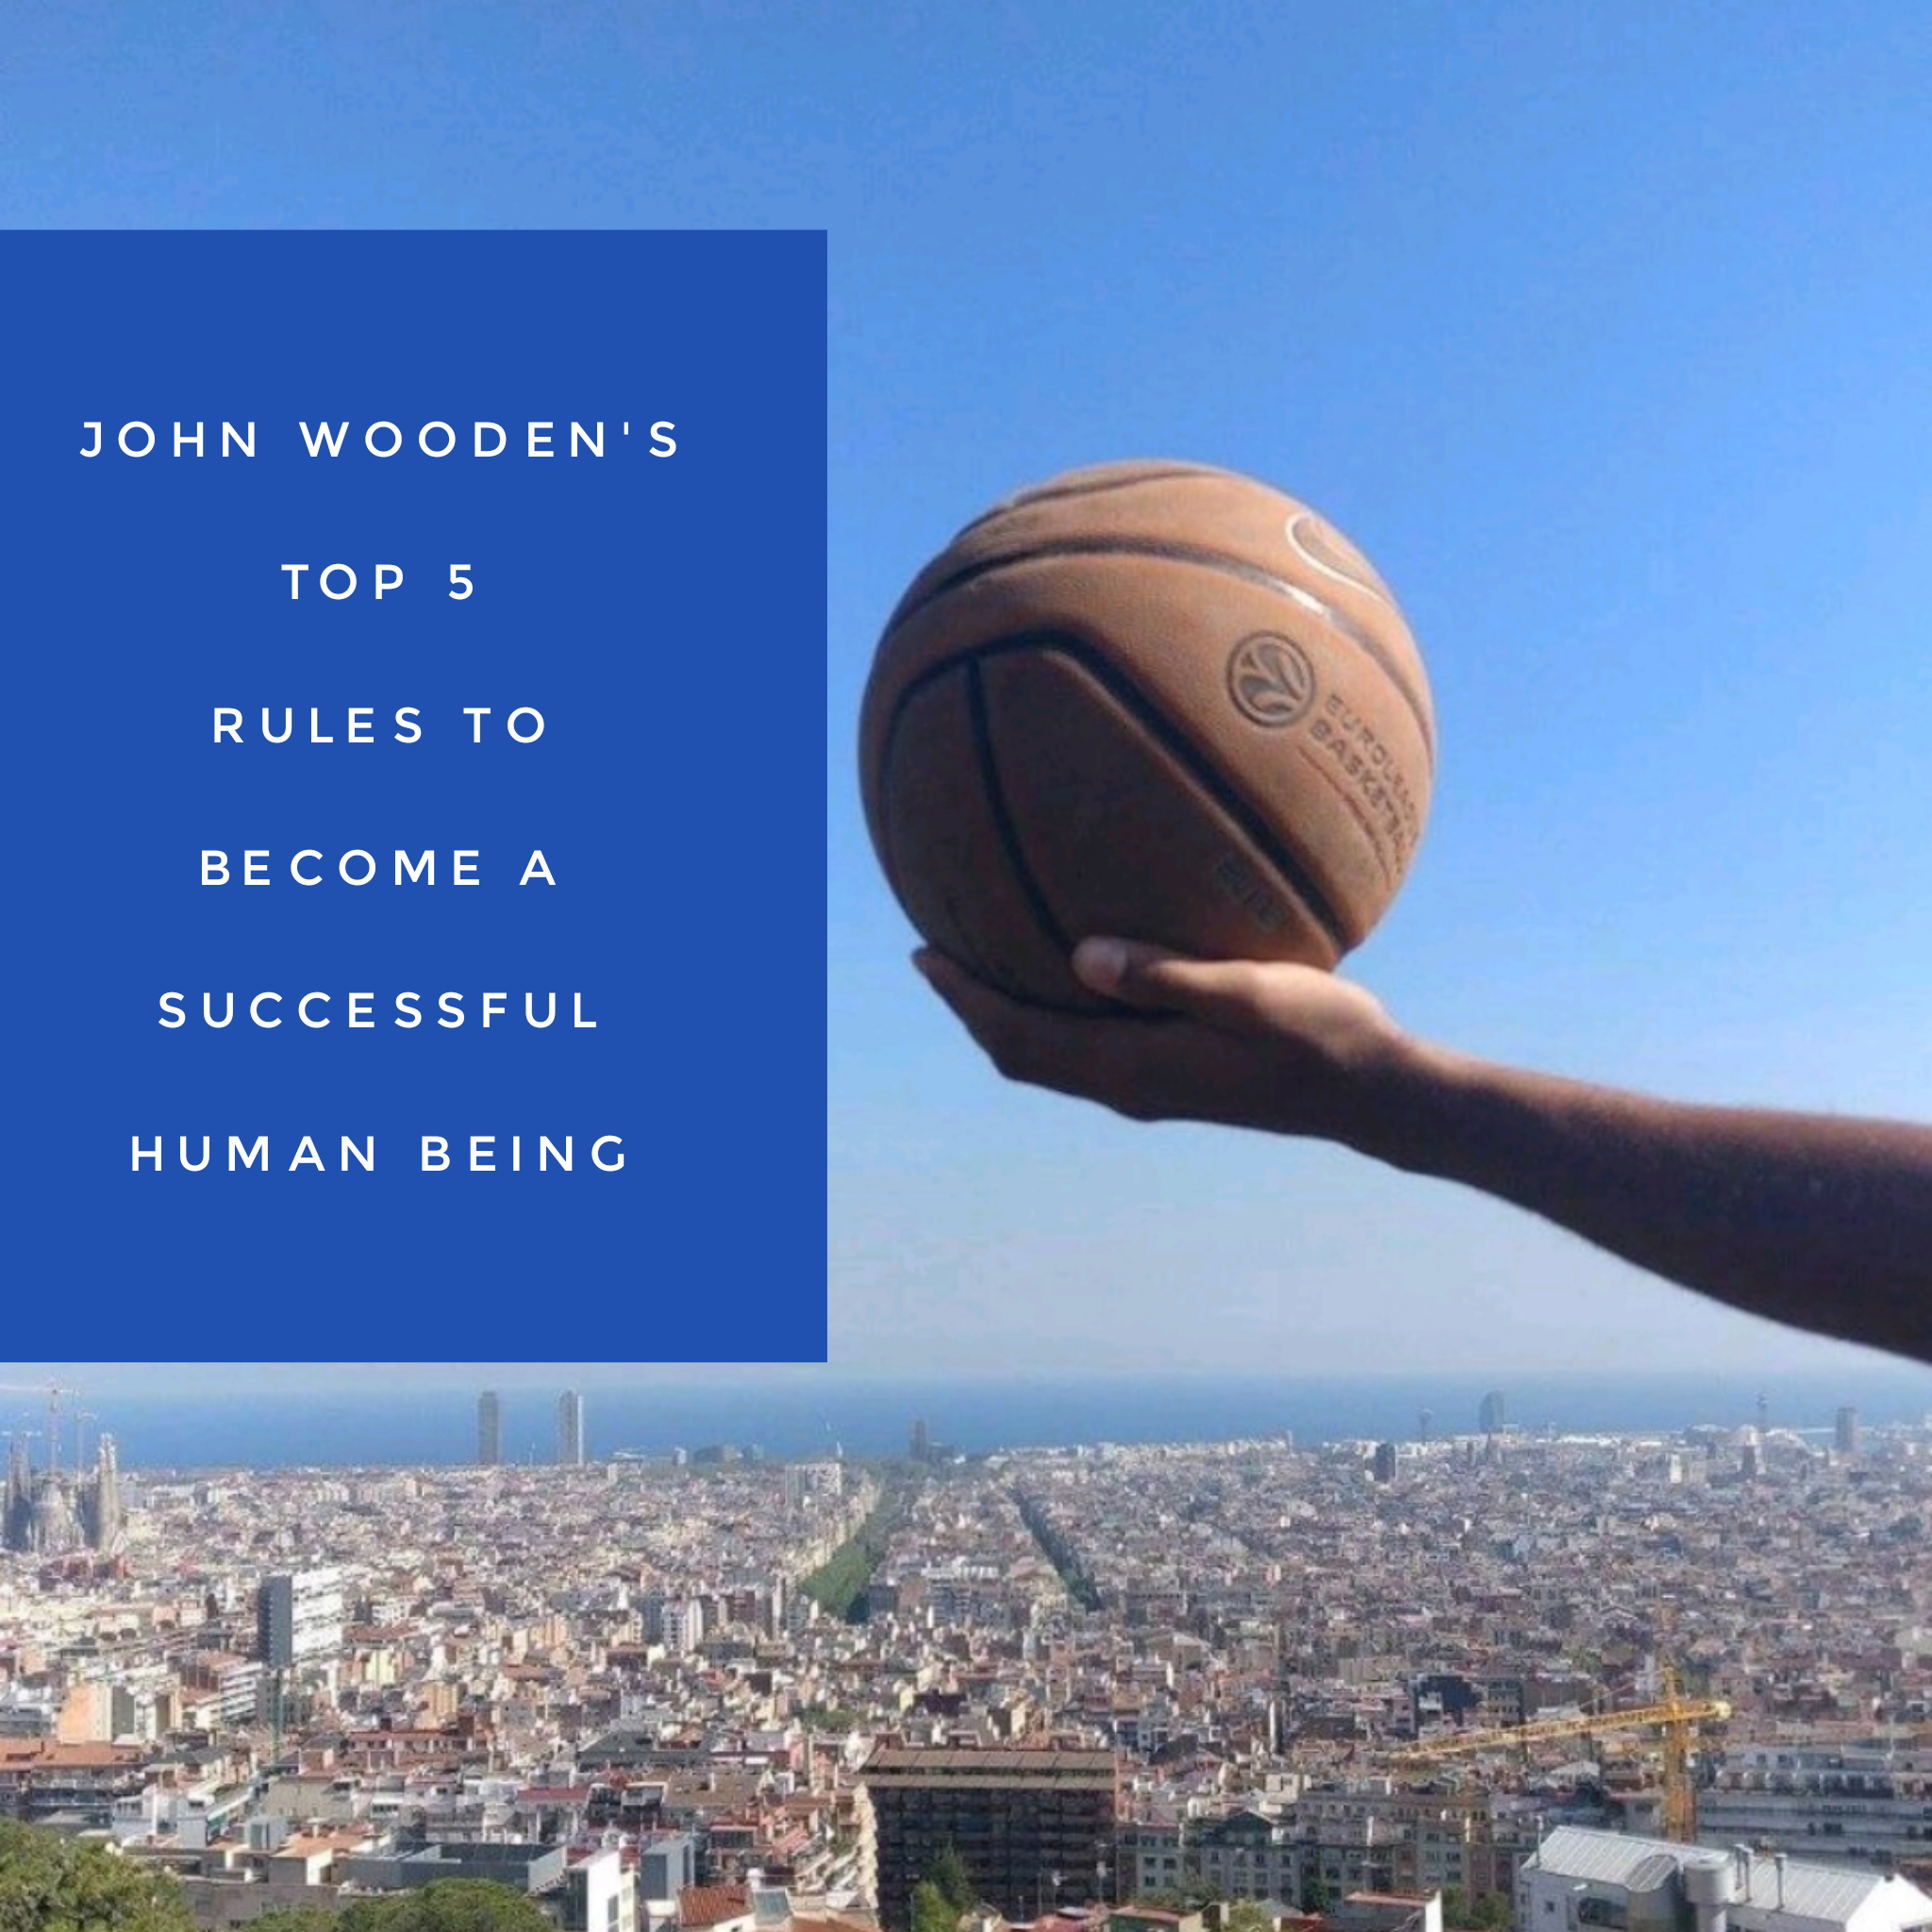 John Wooden's top 5 rules to become a successful human being